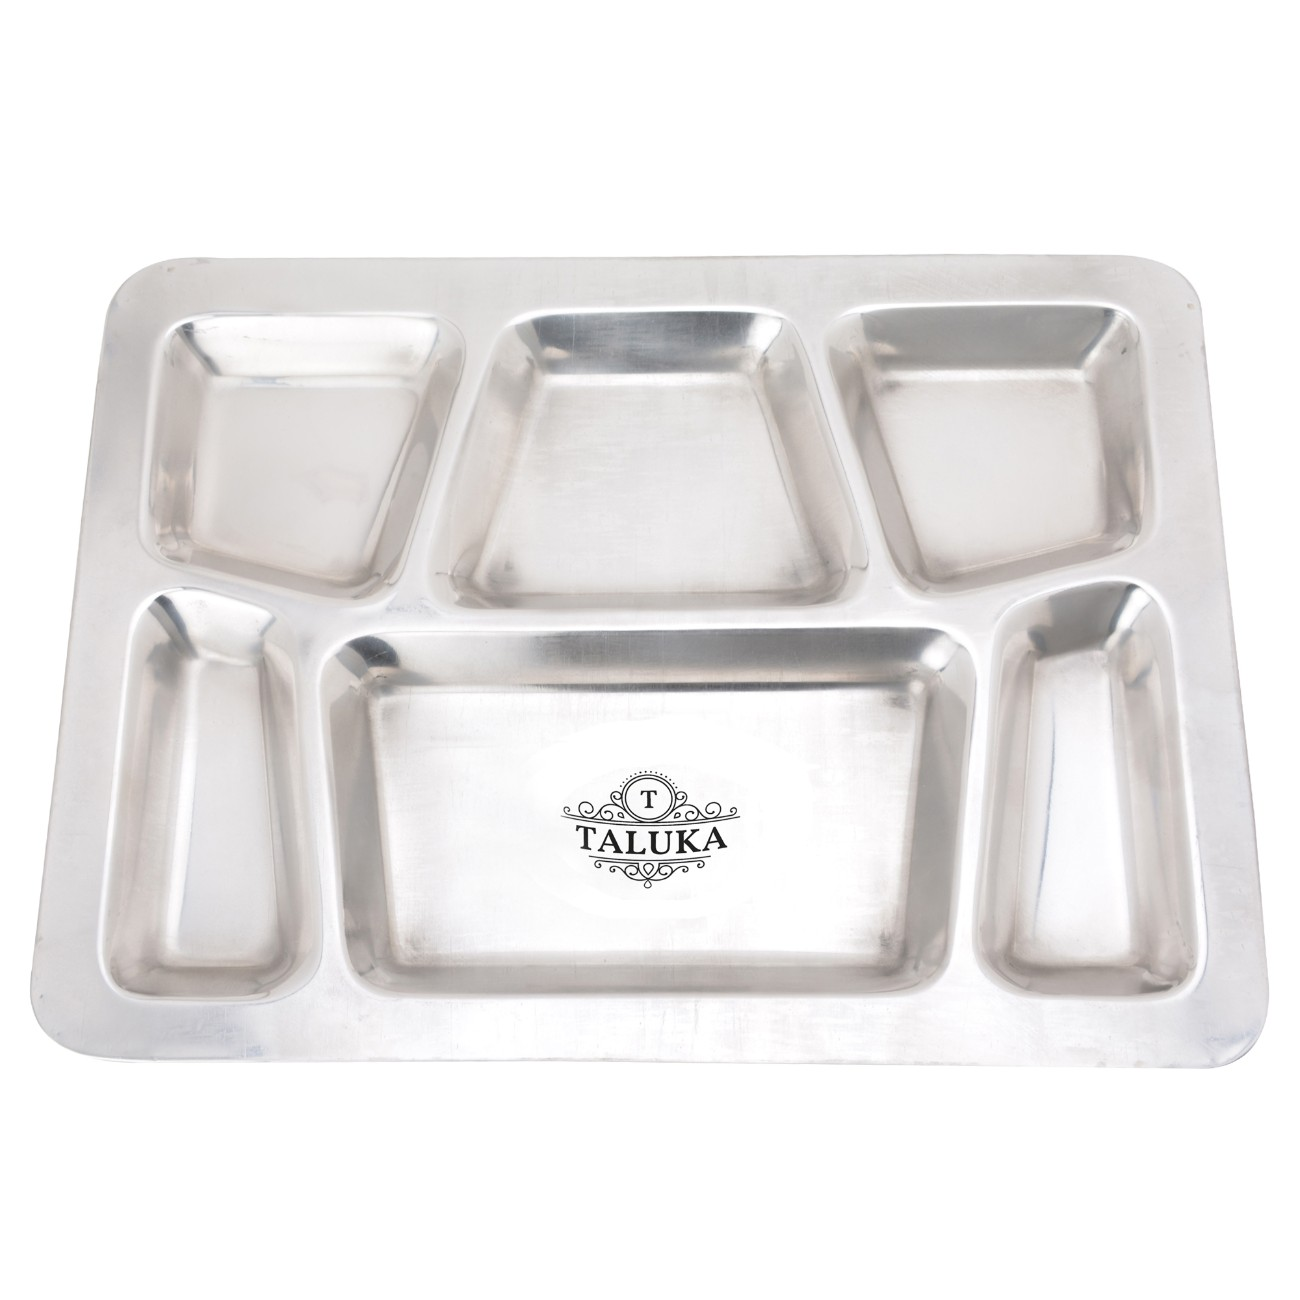 Stainless Steel Compartment 6In1 Dinner Plate For Tableware Restaurant Home Serveware